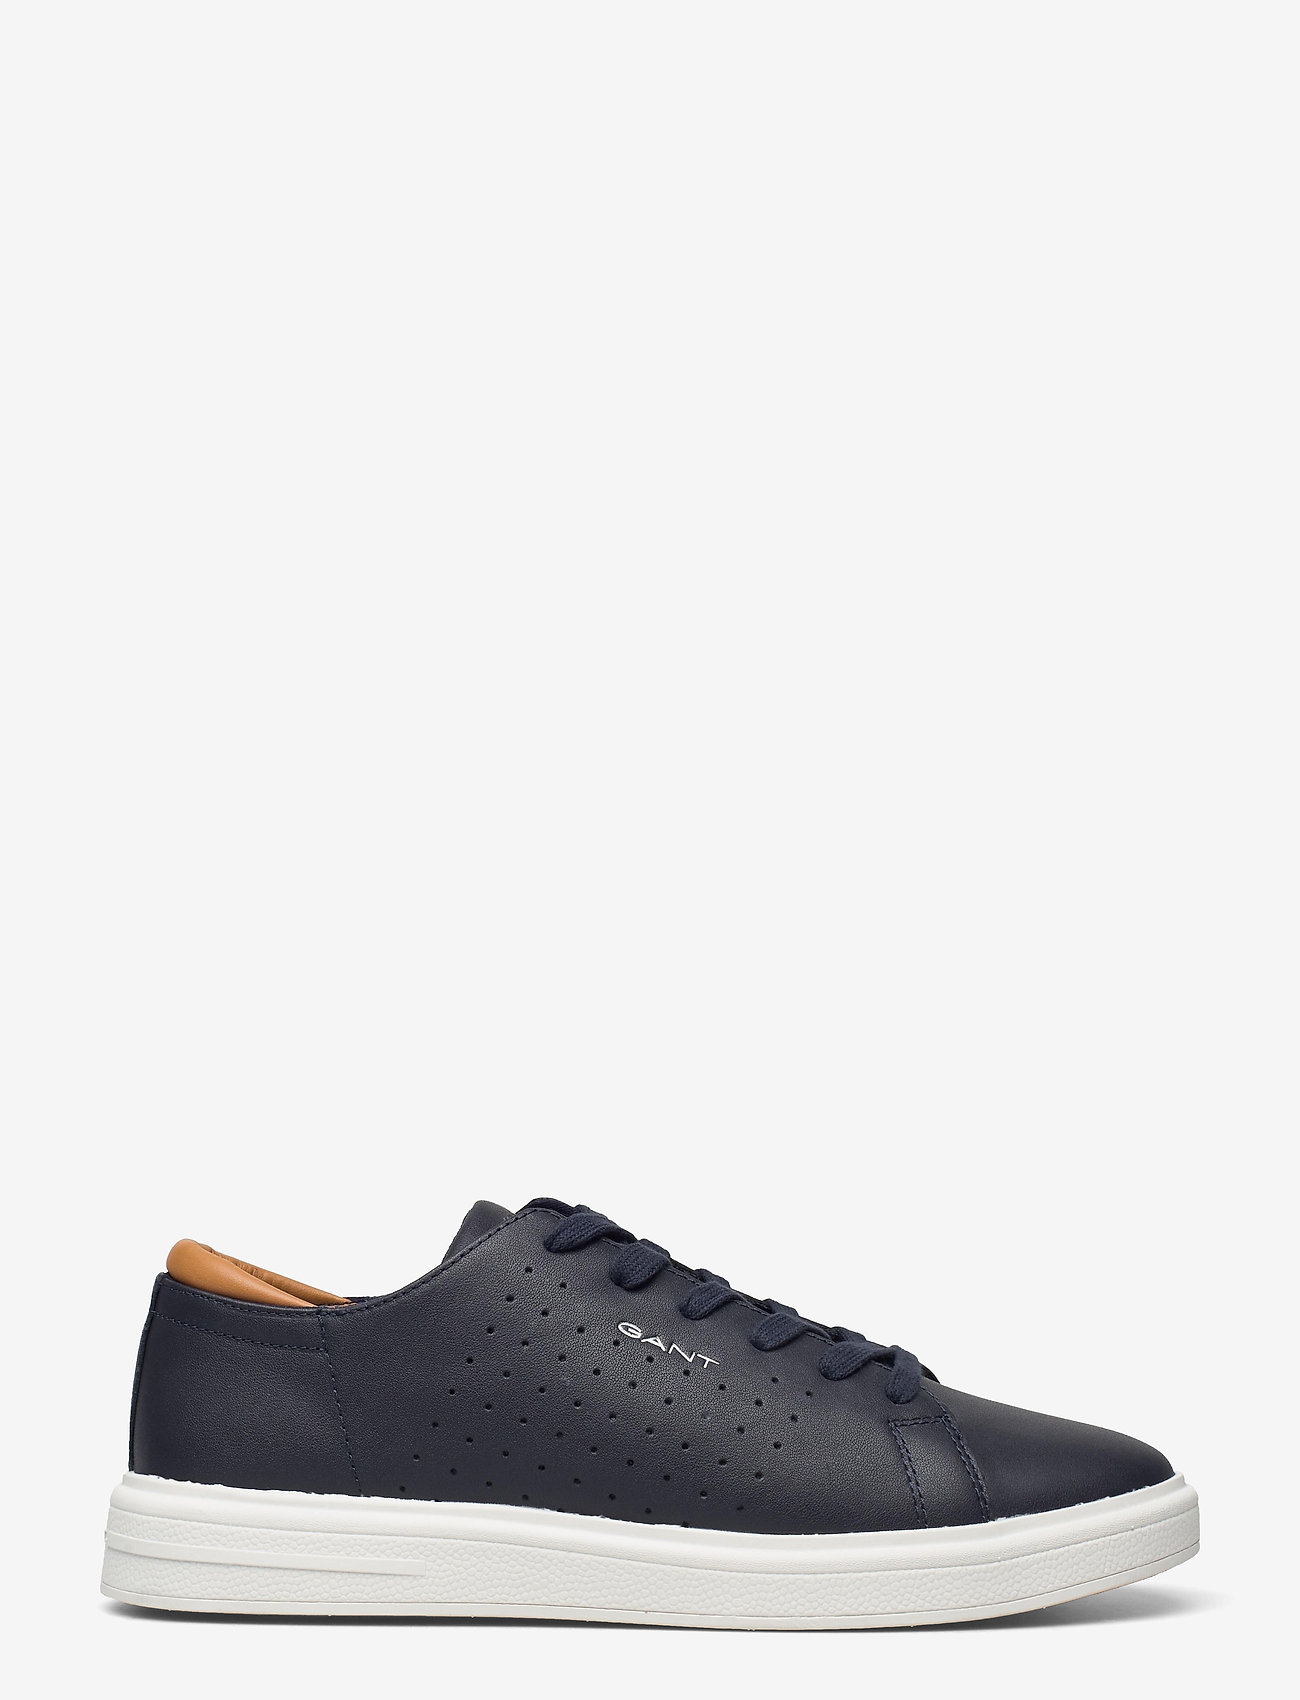 GANT - Fairville Low lace s - low tops - marine - 1